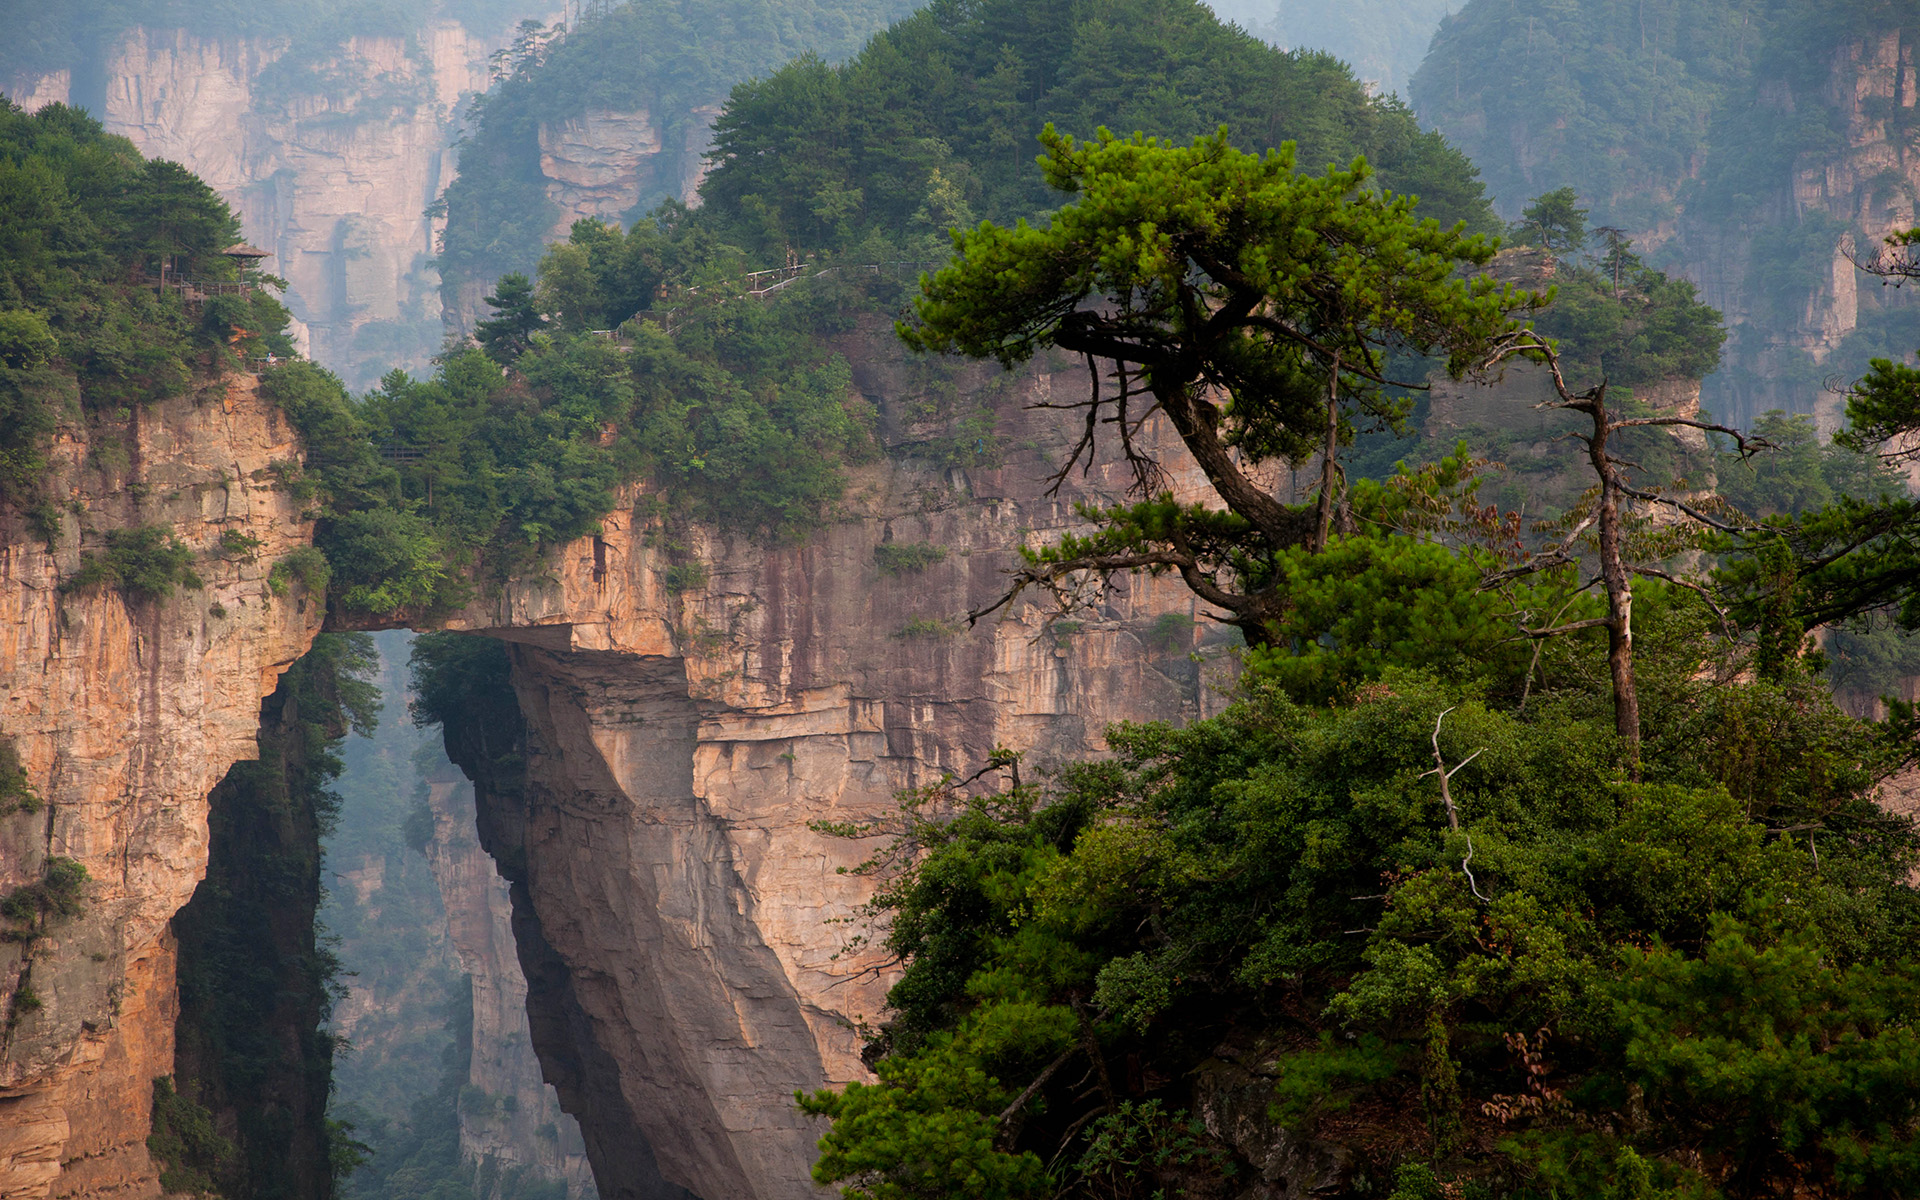 zhangjiajie national park in china hd wallpaper | background image